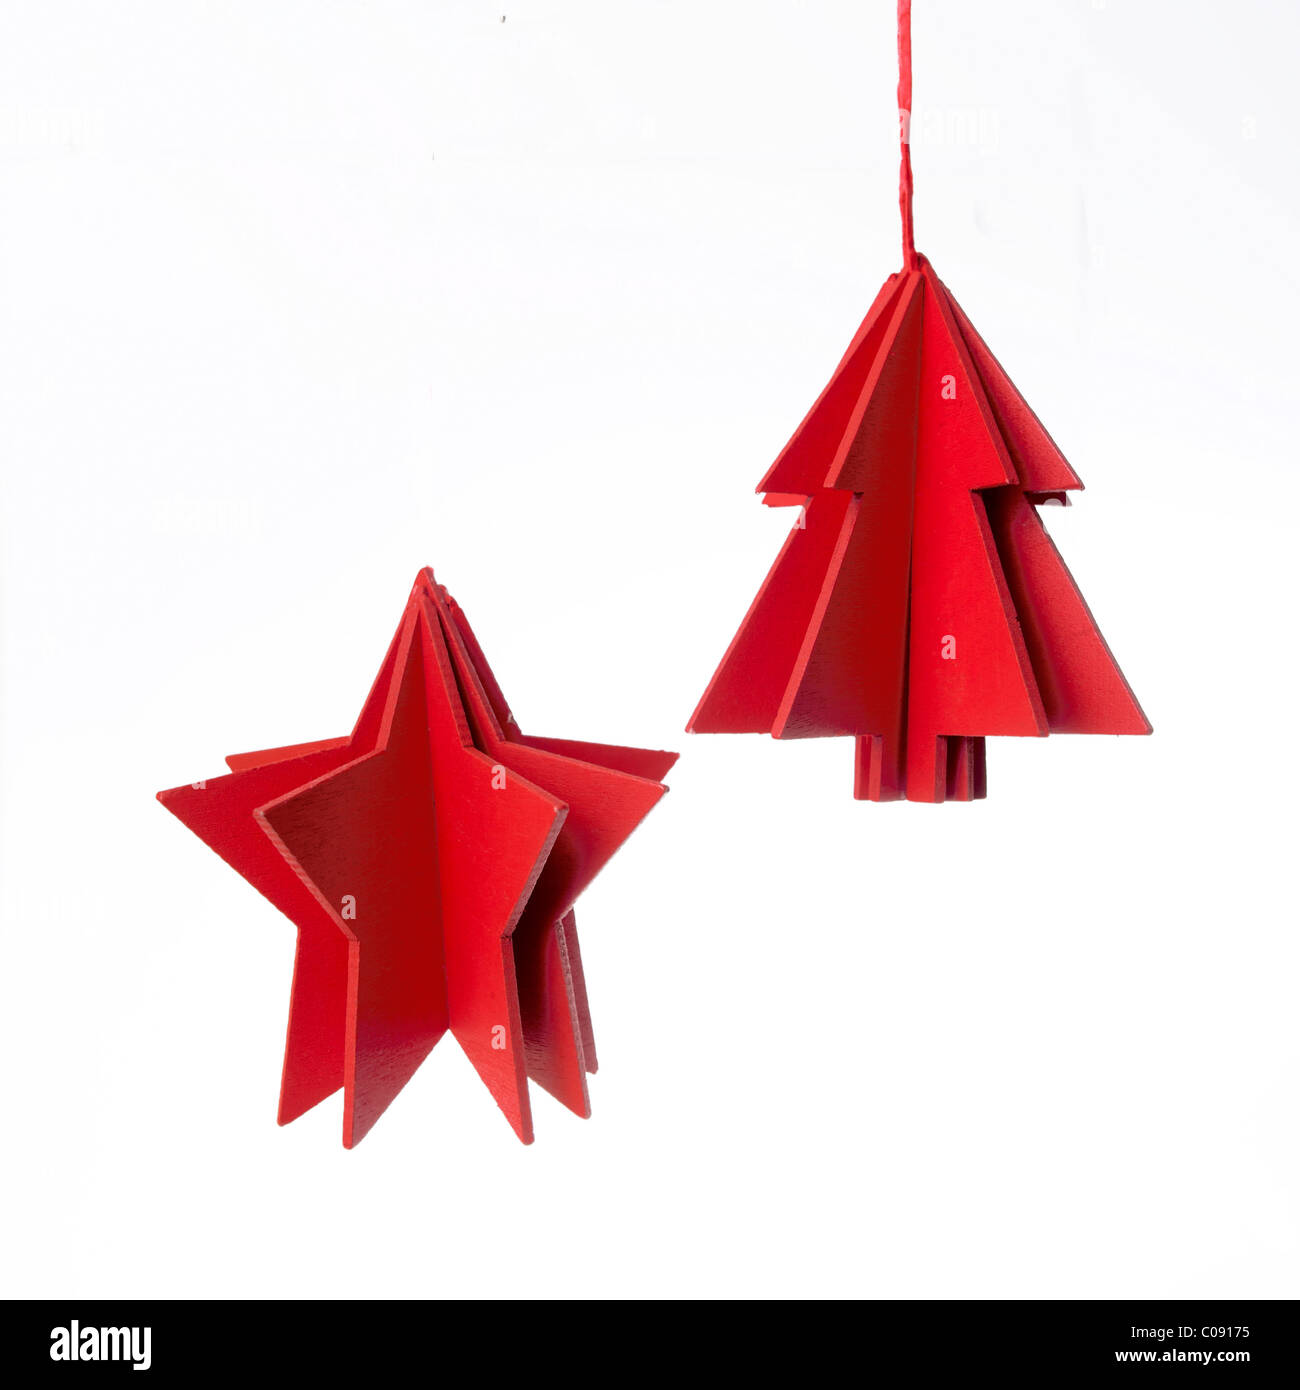 Simple red Christmas decorations - Stock Image